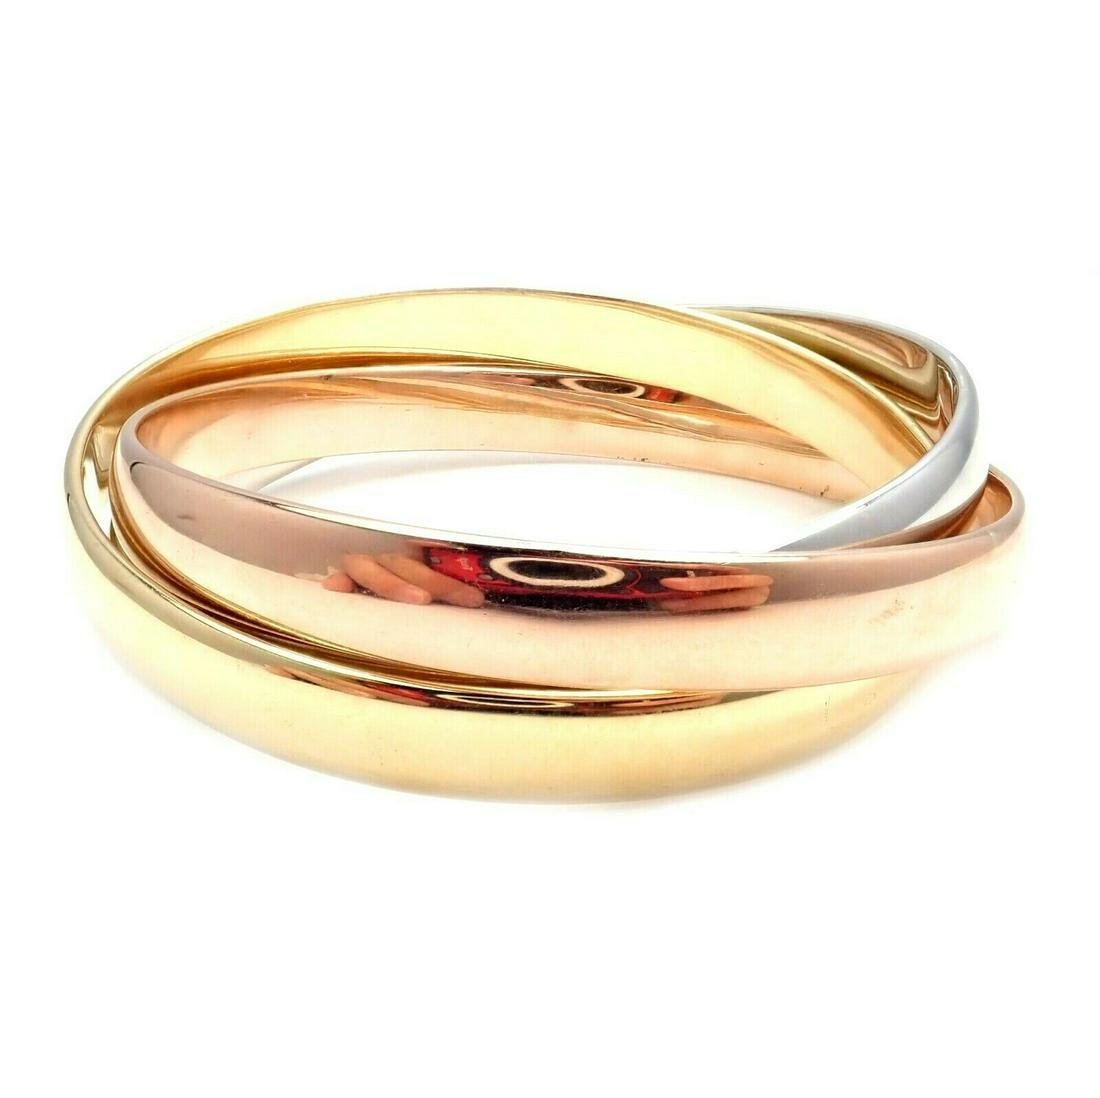 Rare! Cartier 18k Tricolor Gold Large Rolling Trinity